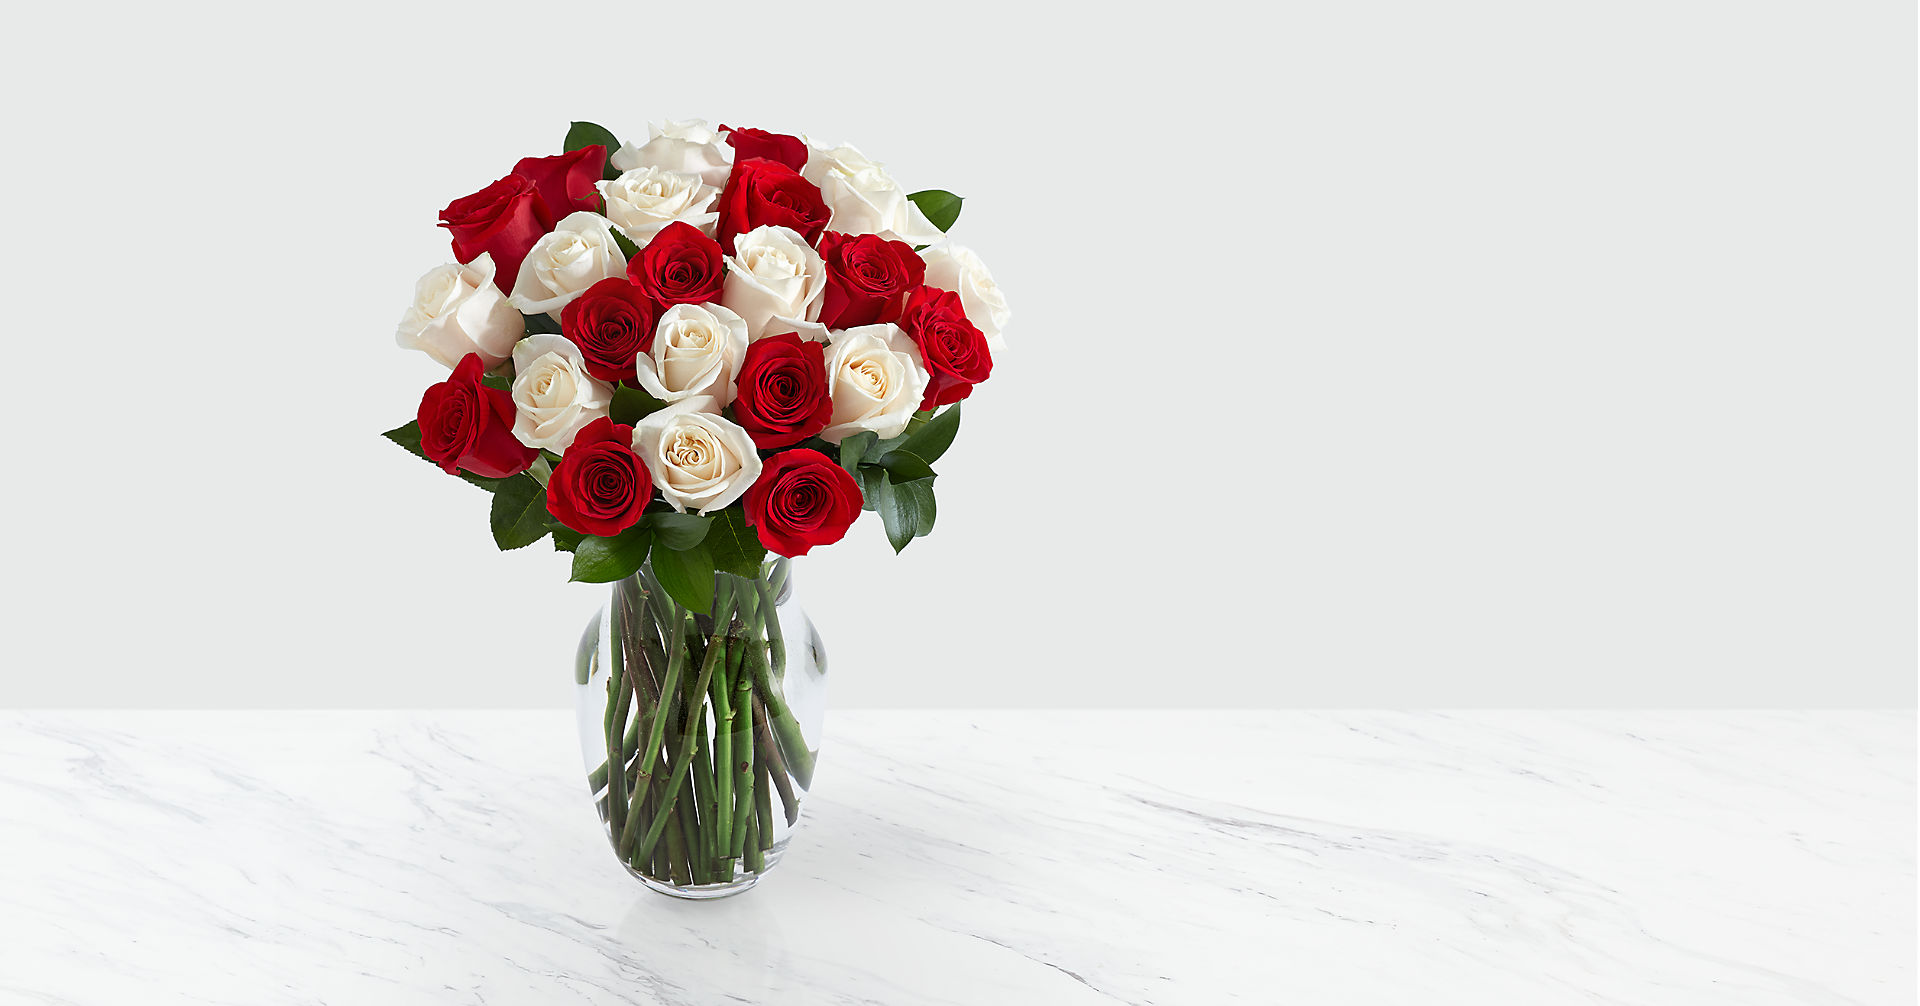 Two Dozen Candy Cane Roses - Image 1 Of 2